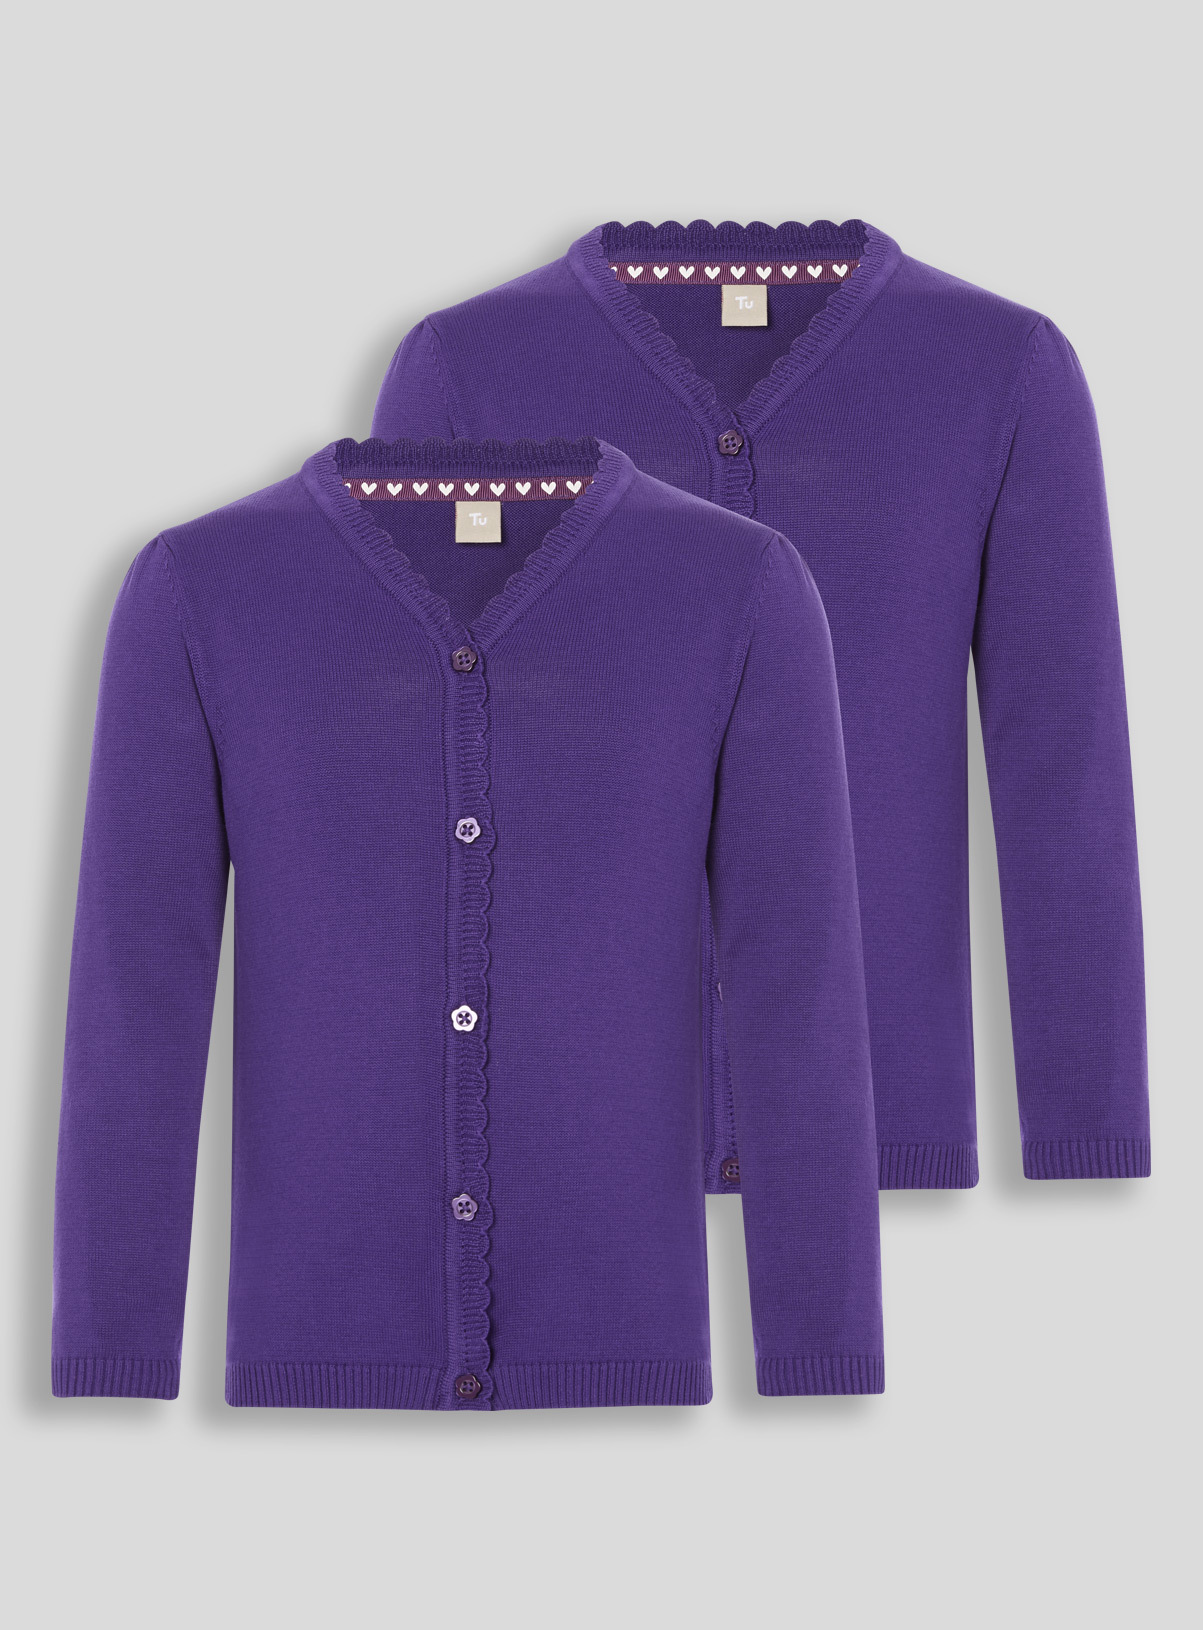 Kids Purple Scalloped Cardigan 2 Pack (3-12 years)  9f4a478a4